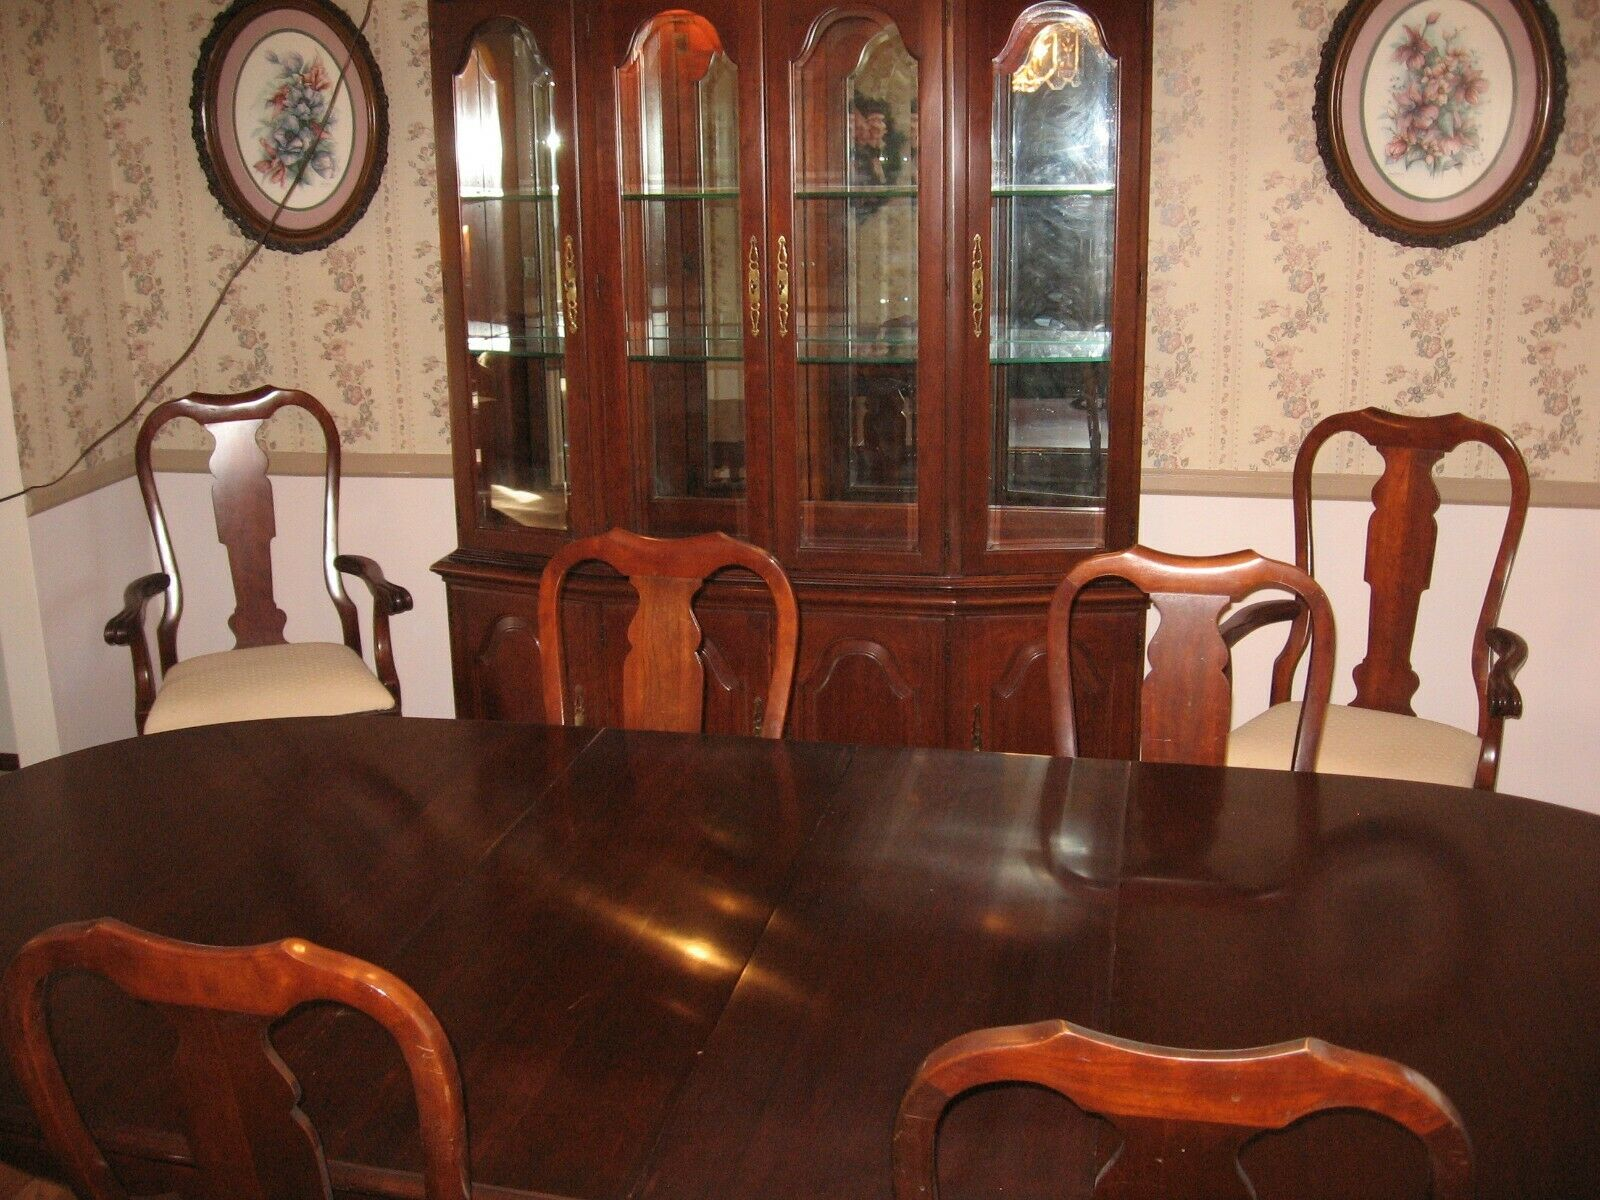 Pennsylvania House Solid Cherry Wood Dining Room Set W China Cabinet 6 Chairs For Sale Online